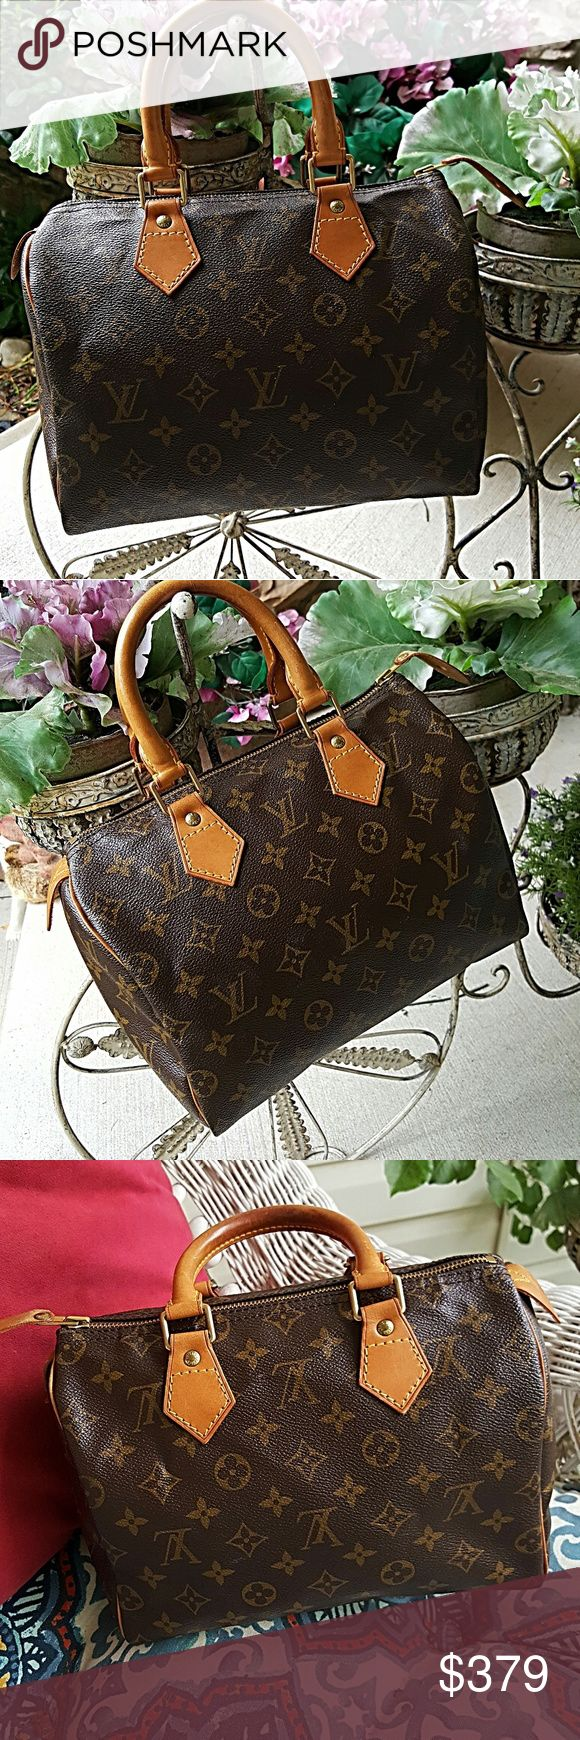 OUTSIDE PHOTOS OF LOUIS VUITTON SPEEDY 25 BAG Although it is raining today, you can tell that this bag is in great condition! Louis Vuitton Bags Satchels